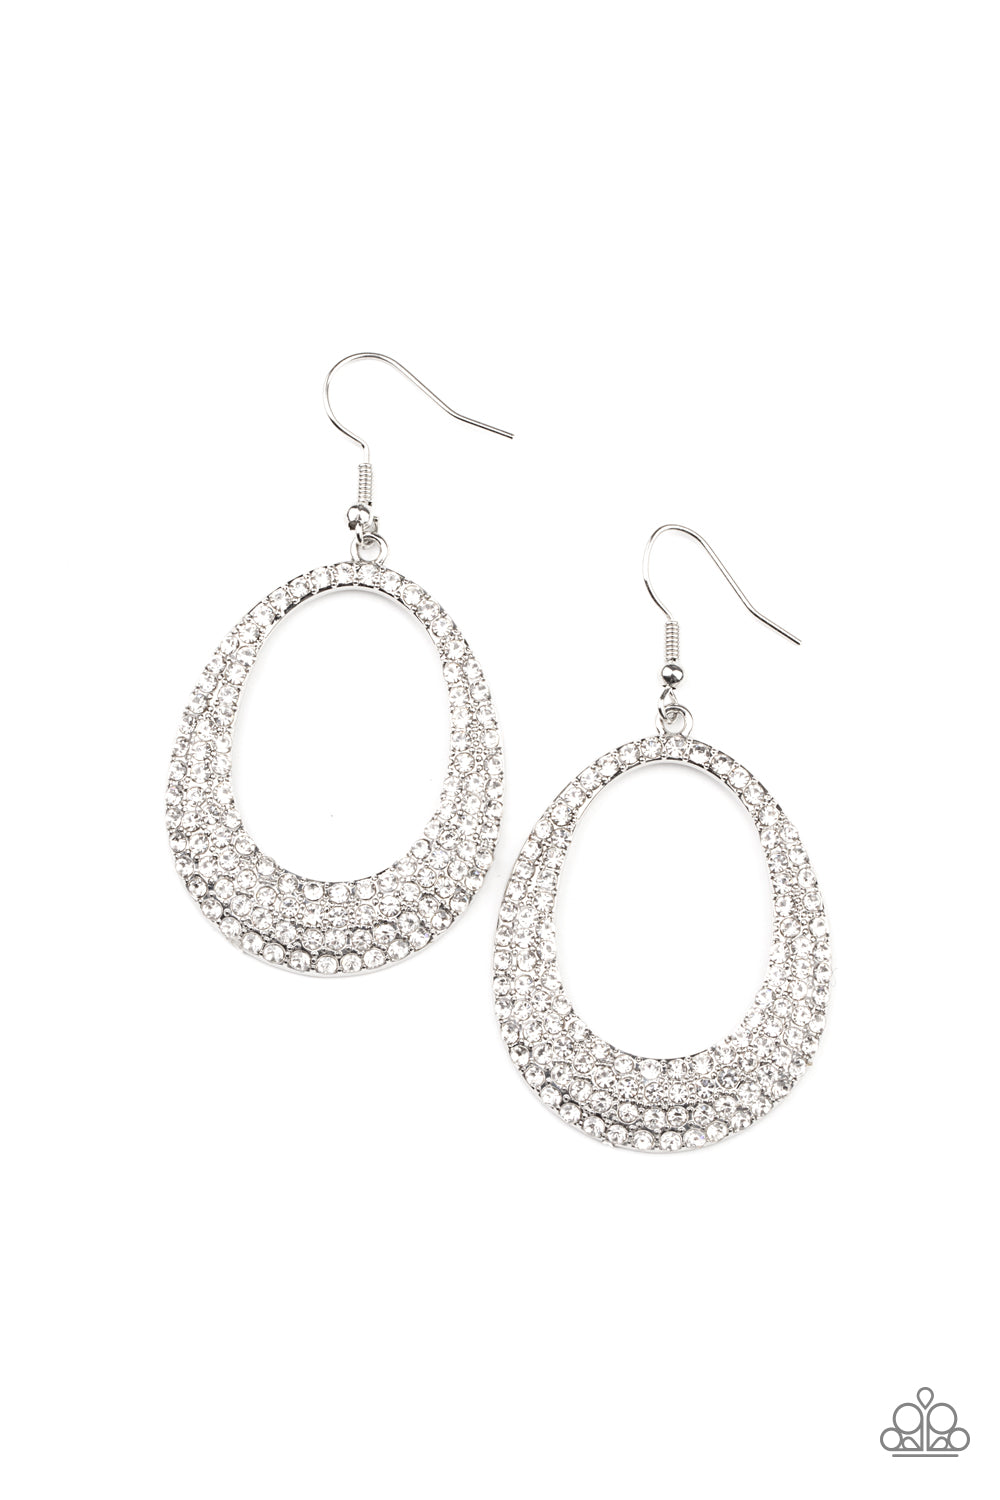 five-dollar-jewelry-life-glows-on-white-earrings-paparazzi-accessories